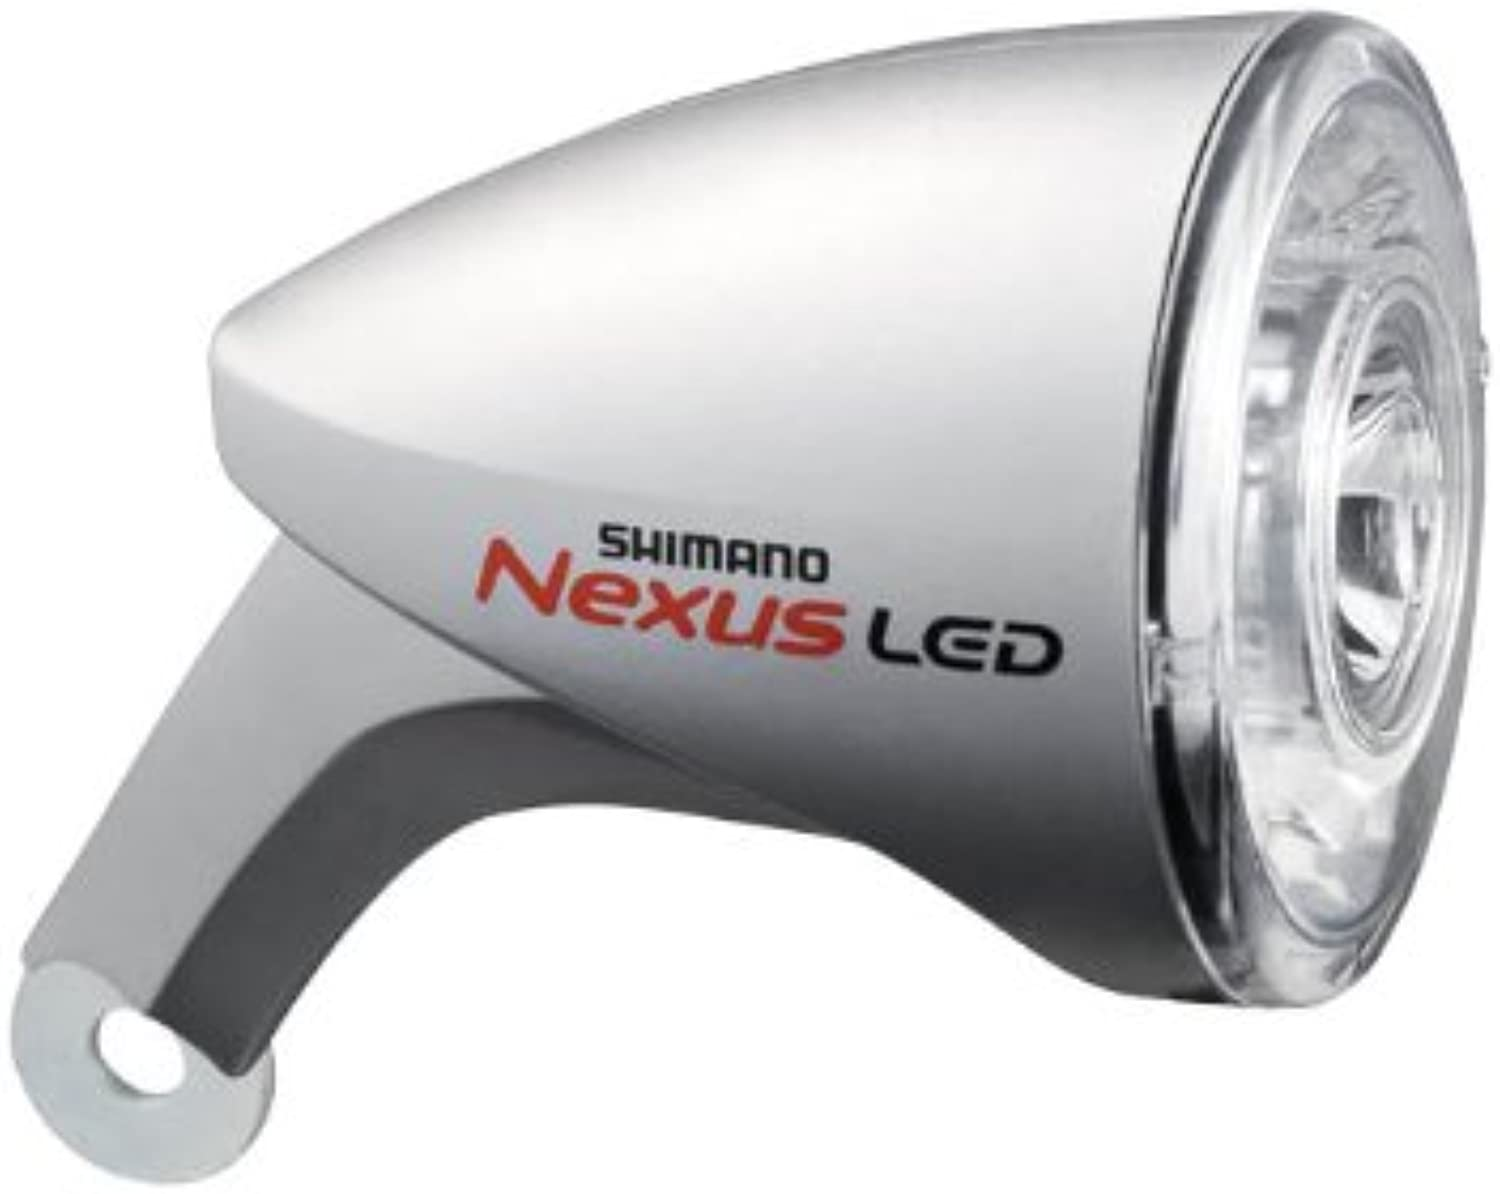 Shimano Light Reflector LPX101 J2 ALPX101J2AS for terminal silver lamp stays